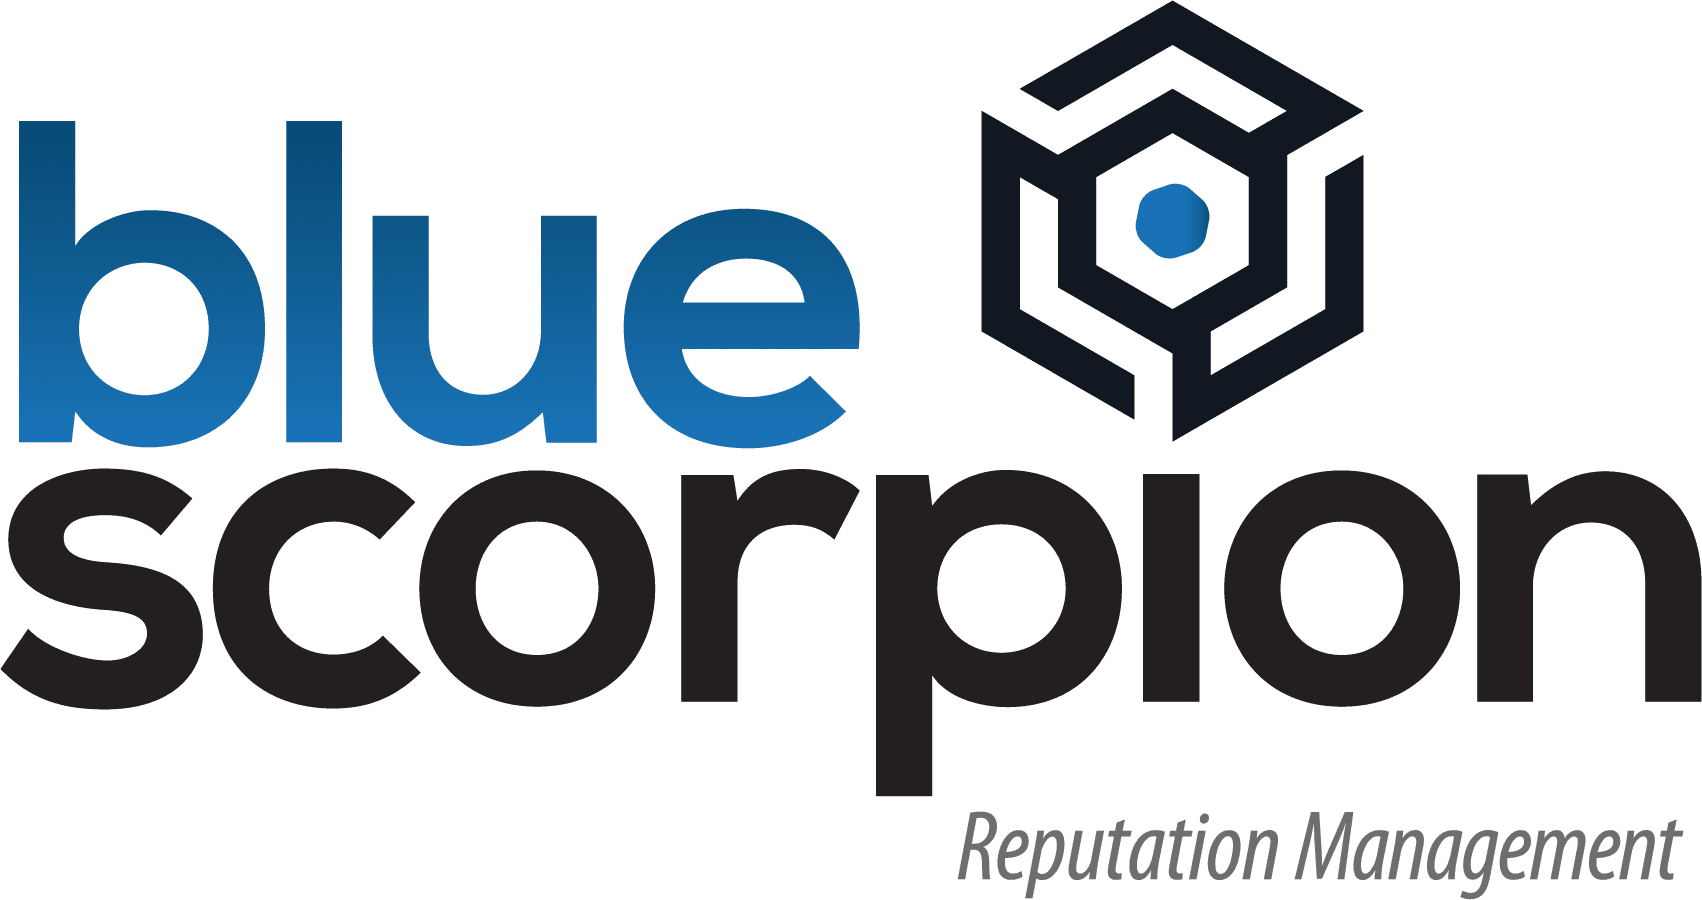 Blue Scorpion Reputation Management